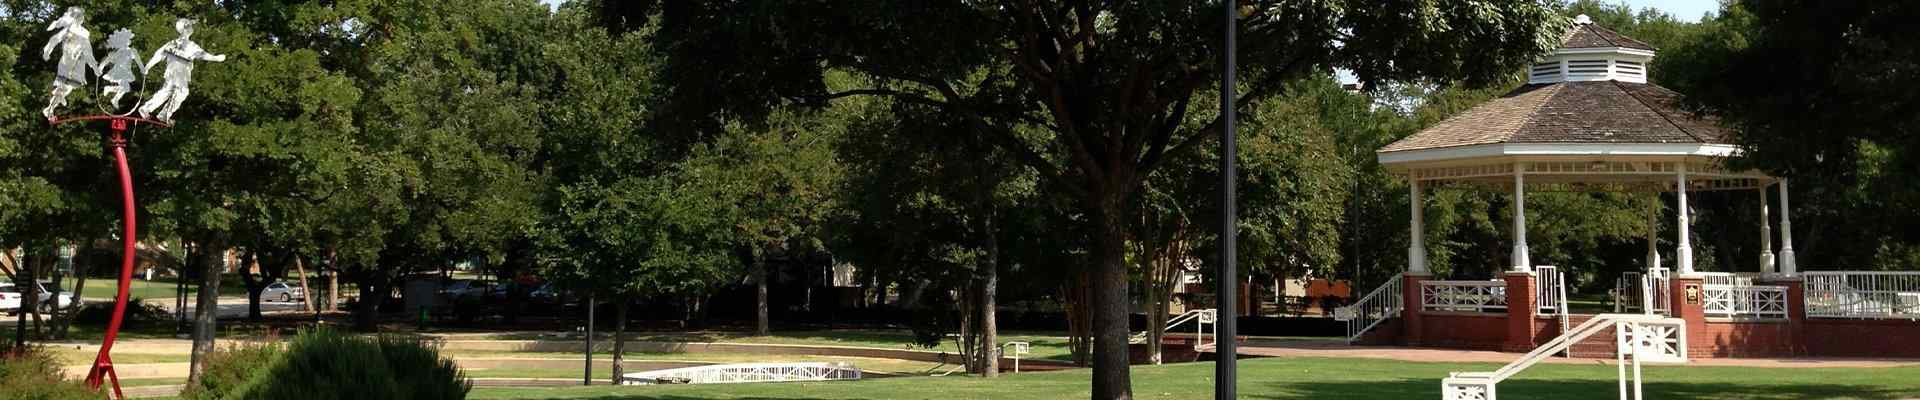 a view of a park and gazebo in plano texas